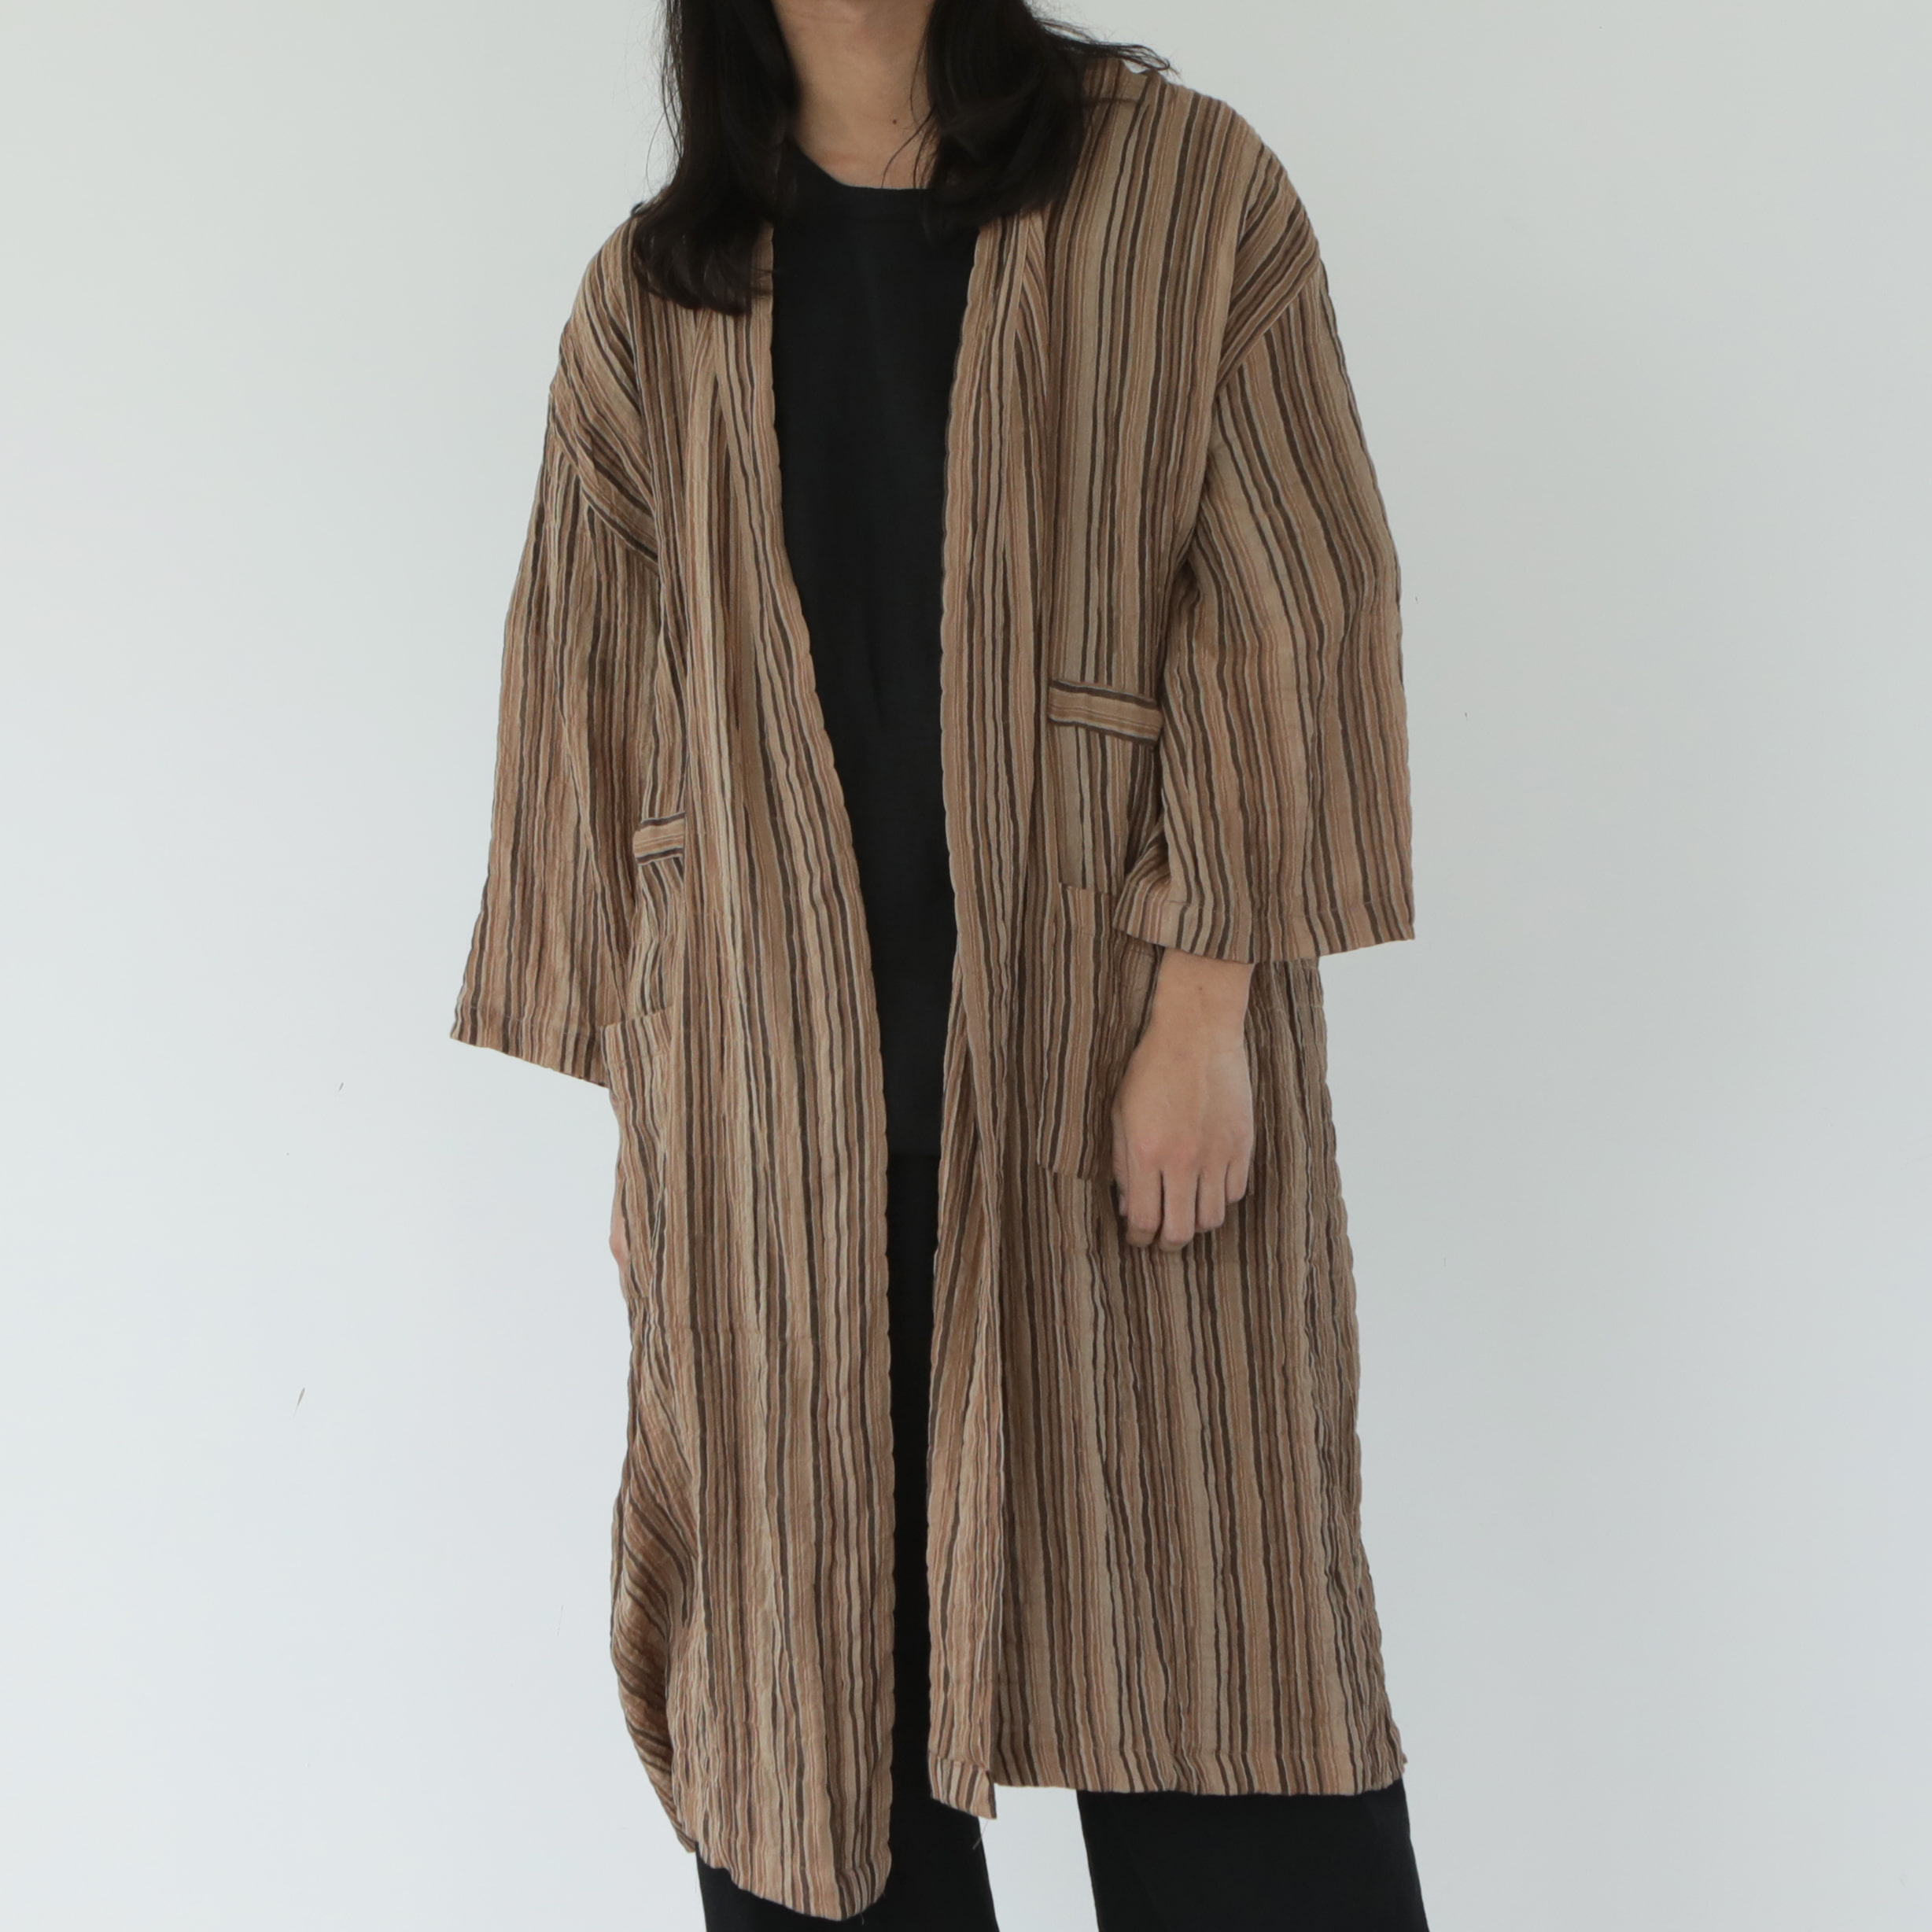 [말렌] unisex vintage robe brown